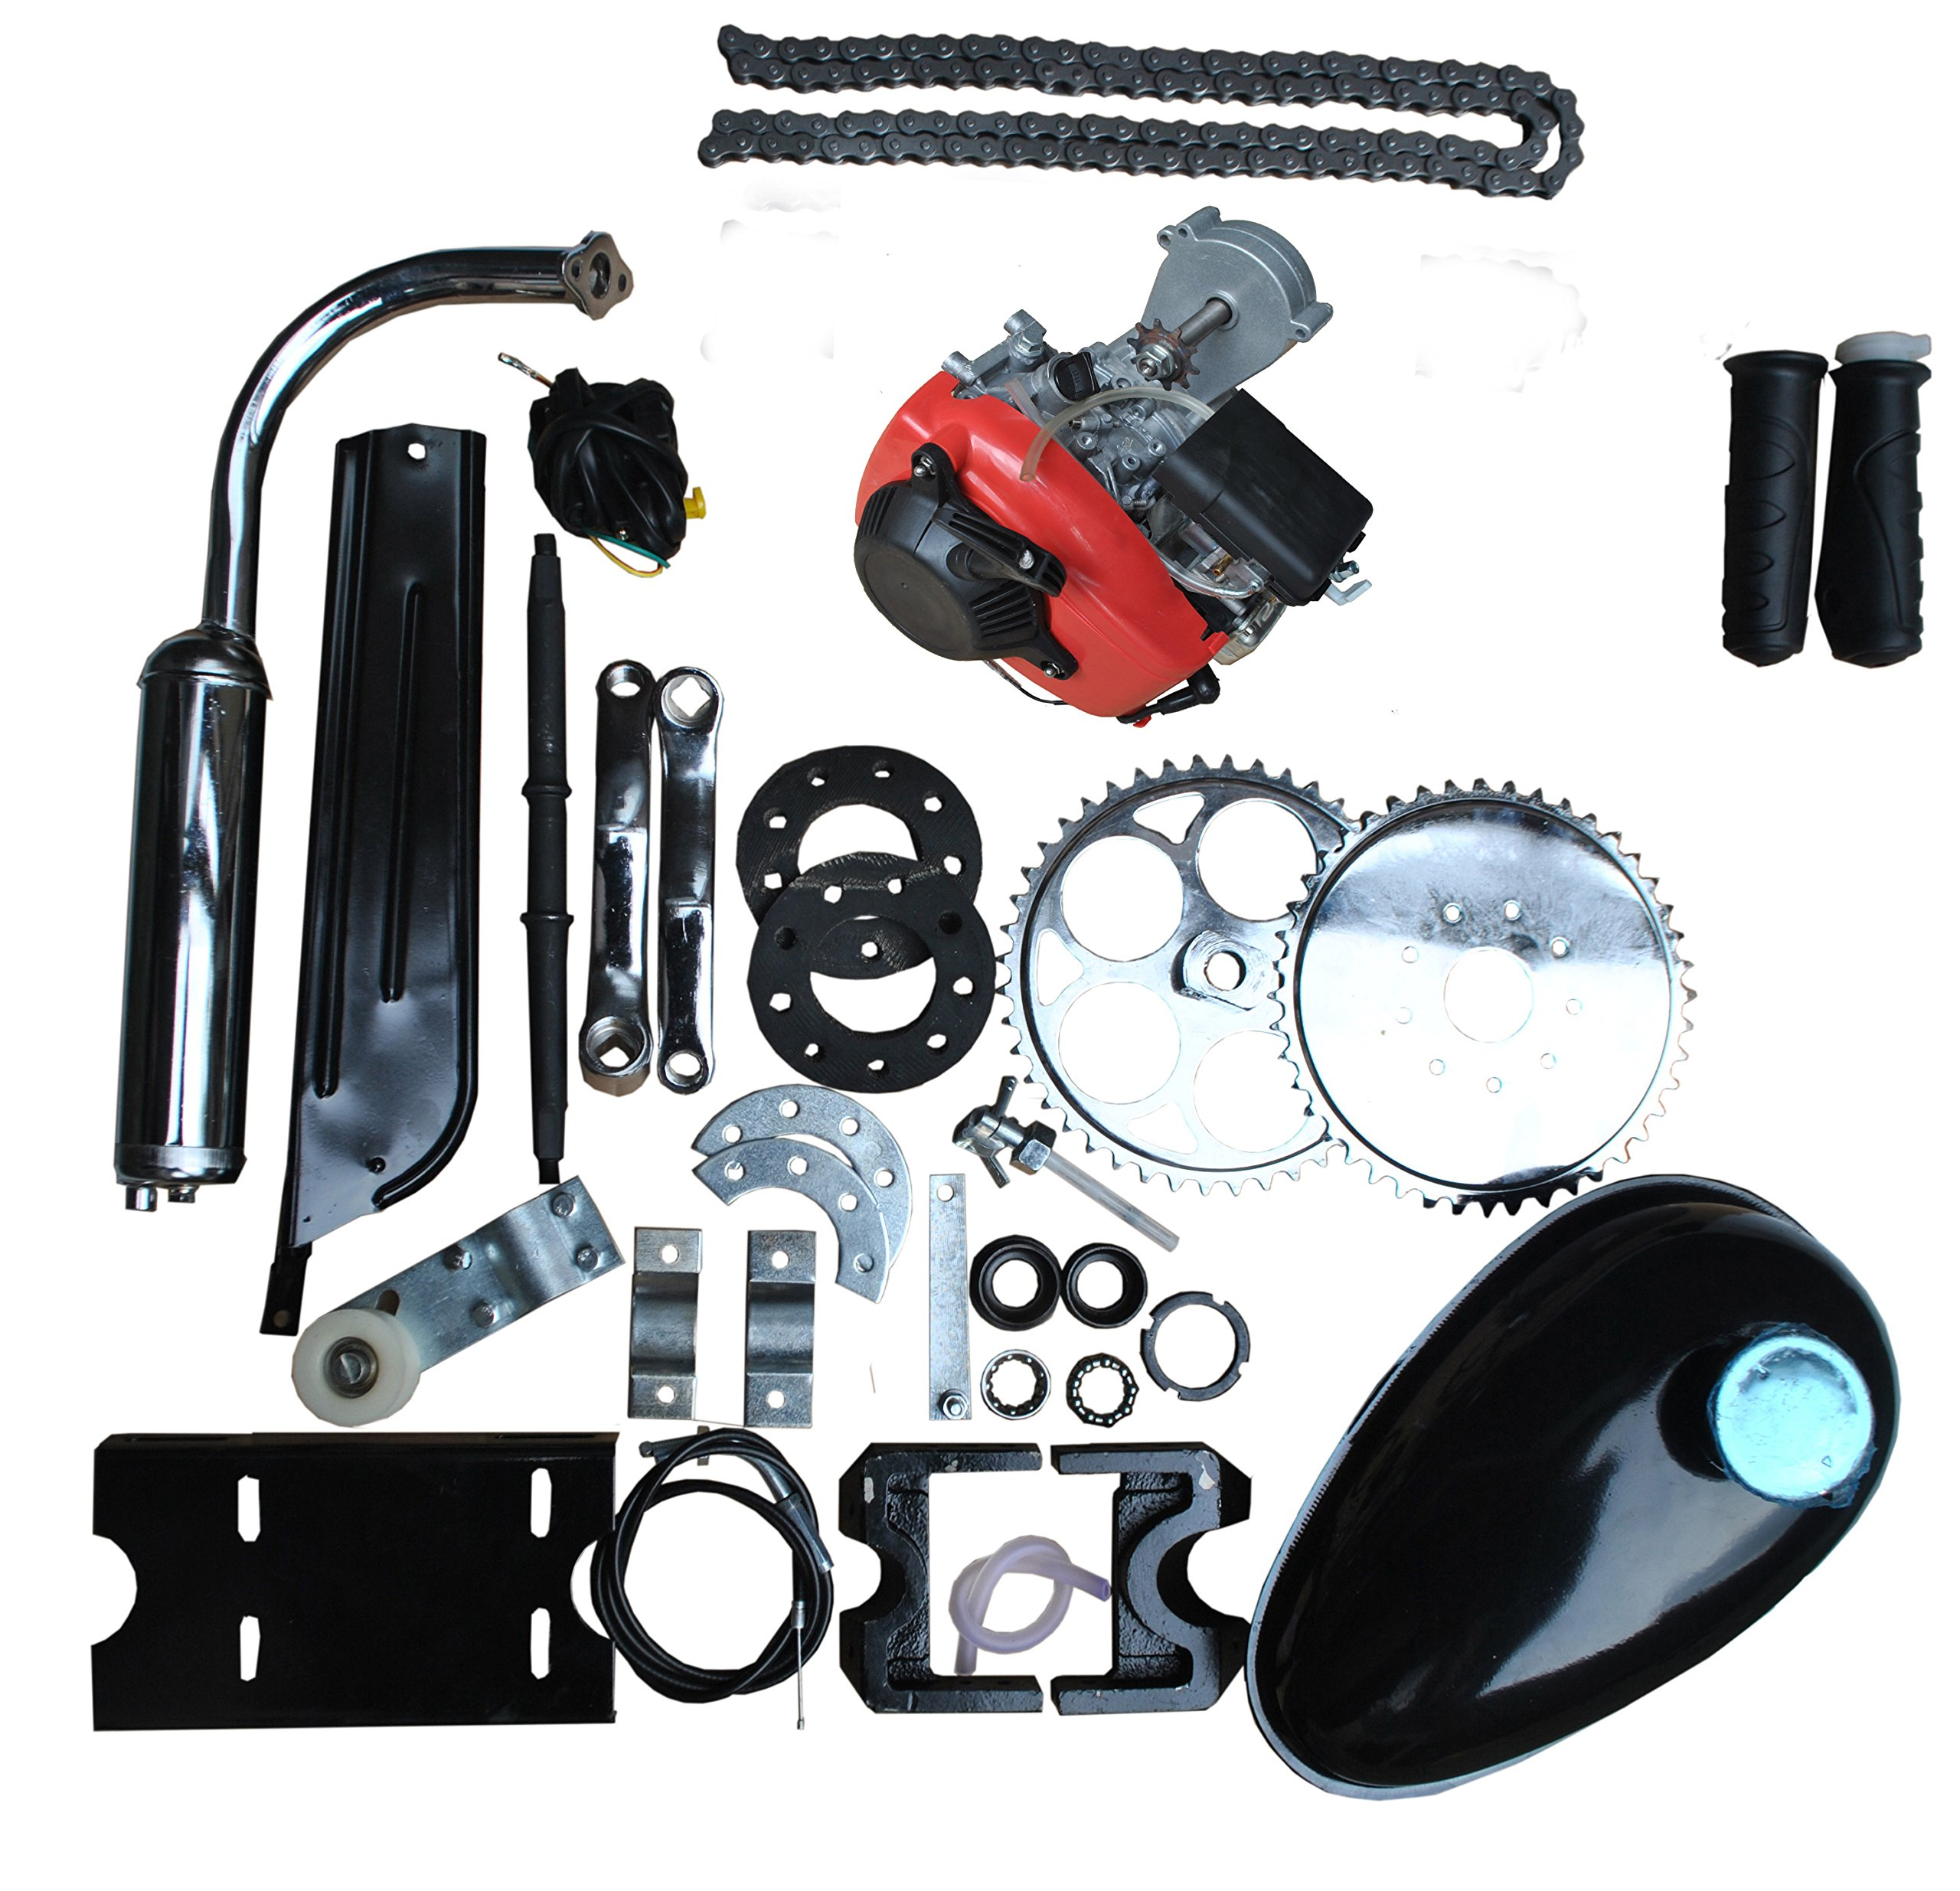 New 4-Stroke 49CC Gas Petrol DIY Motorized Bicycle Bike Engine Motor Kit Scooter by Sican